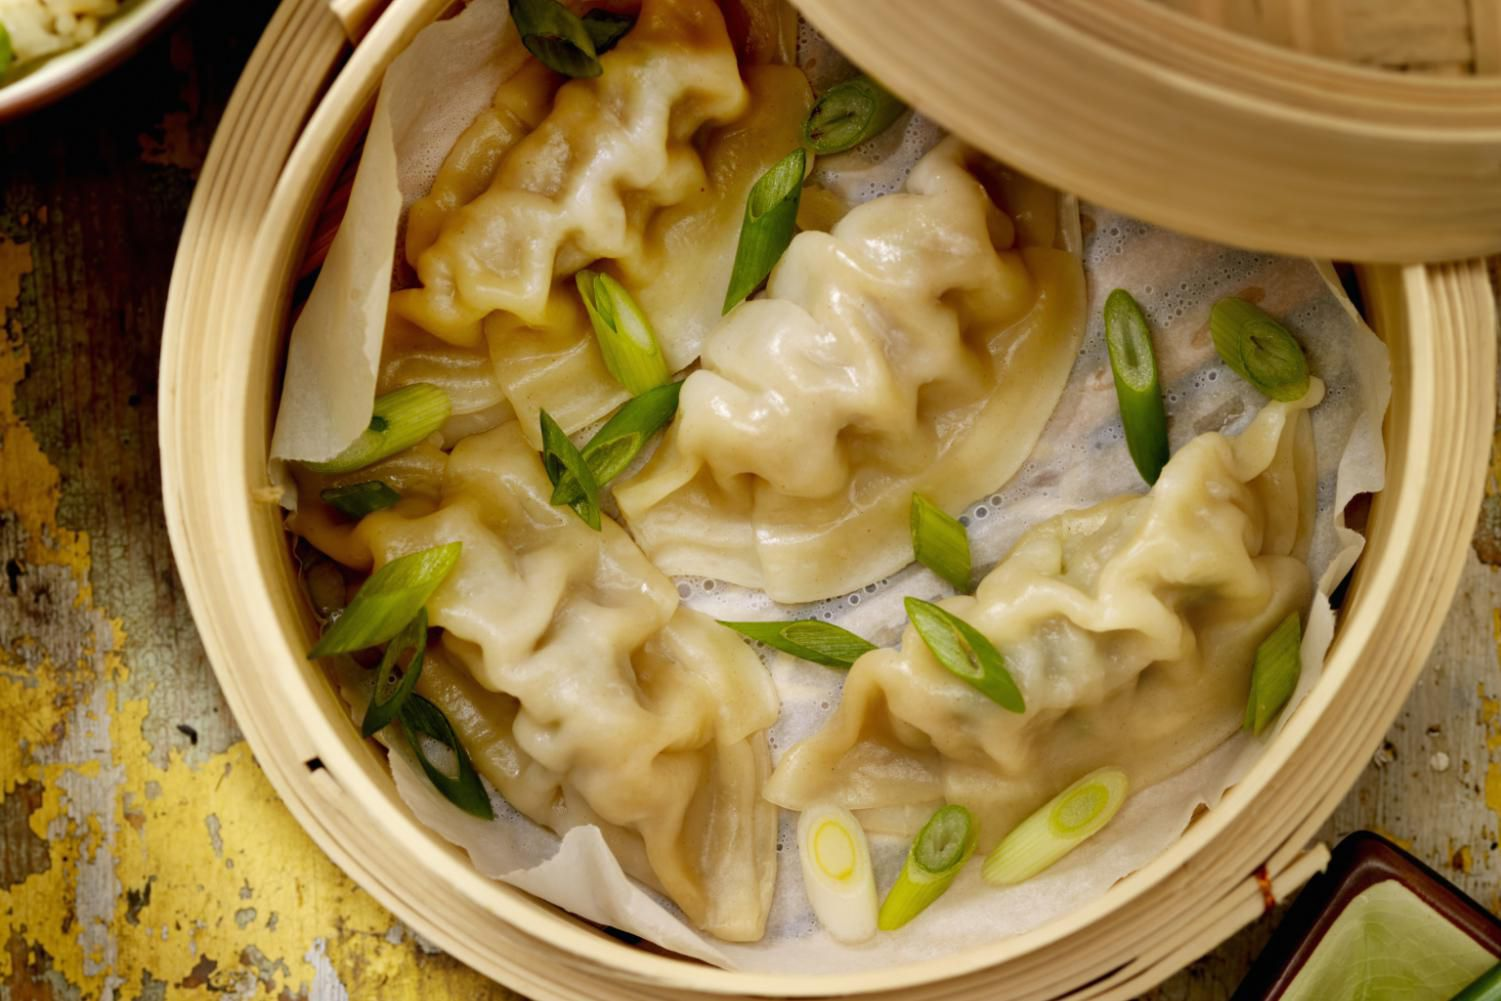 How to Make Delectable Vegetarian Potstickers